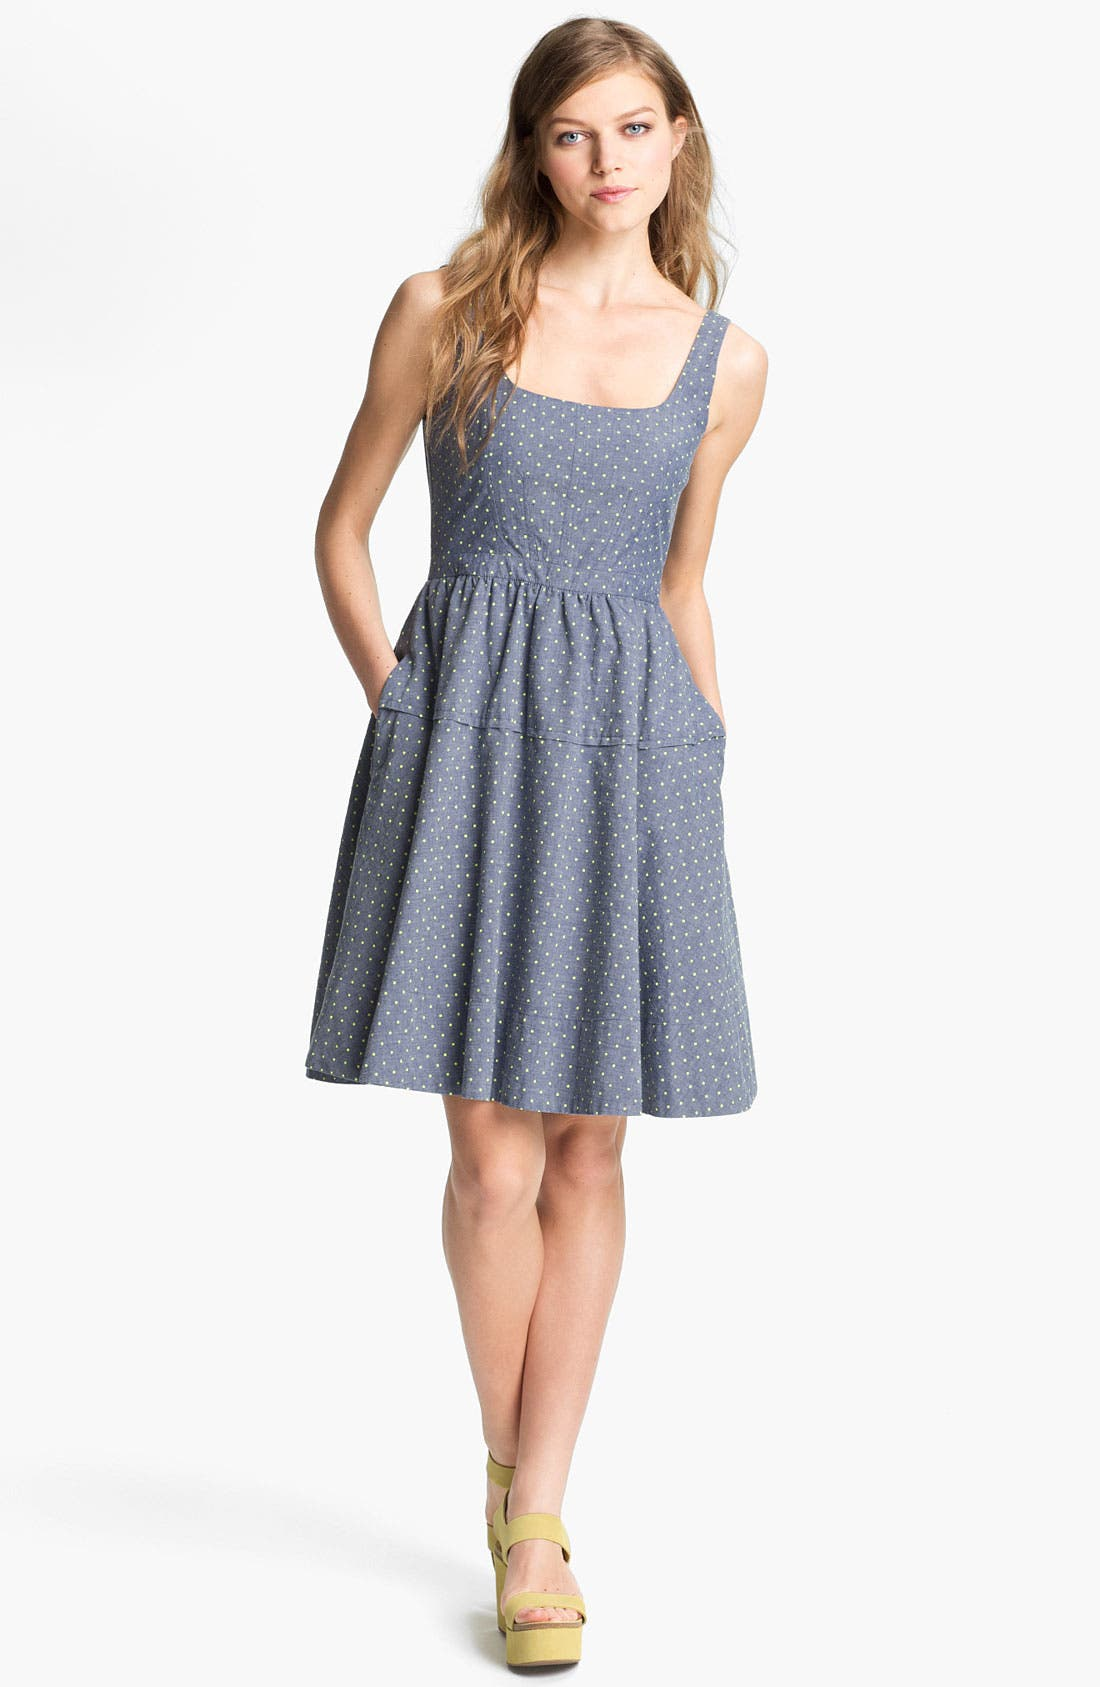 Alternate Image 1 Selected - MARC BY MARC JACOBS 'Dotty' Cotton Fit & Flare Dress